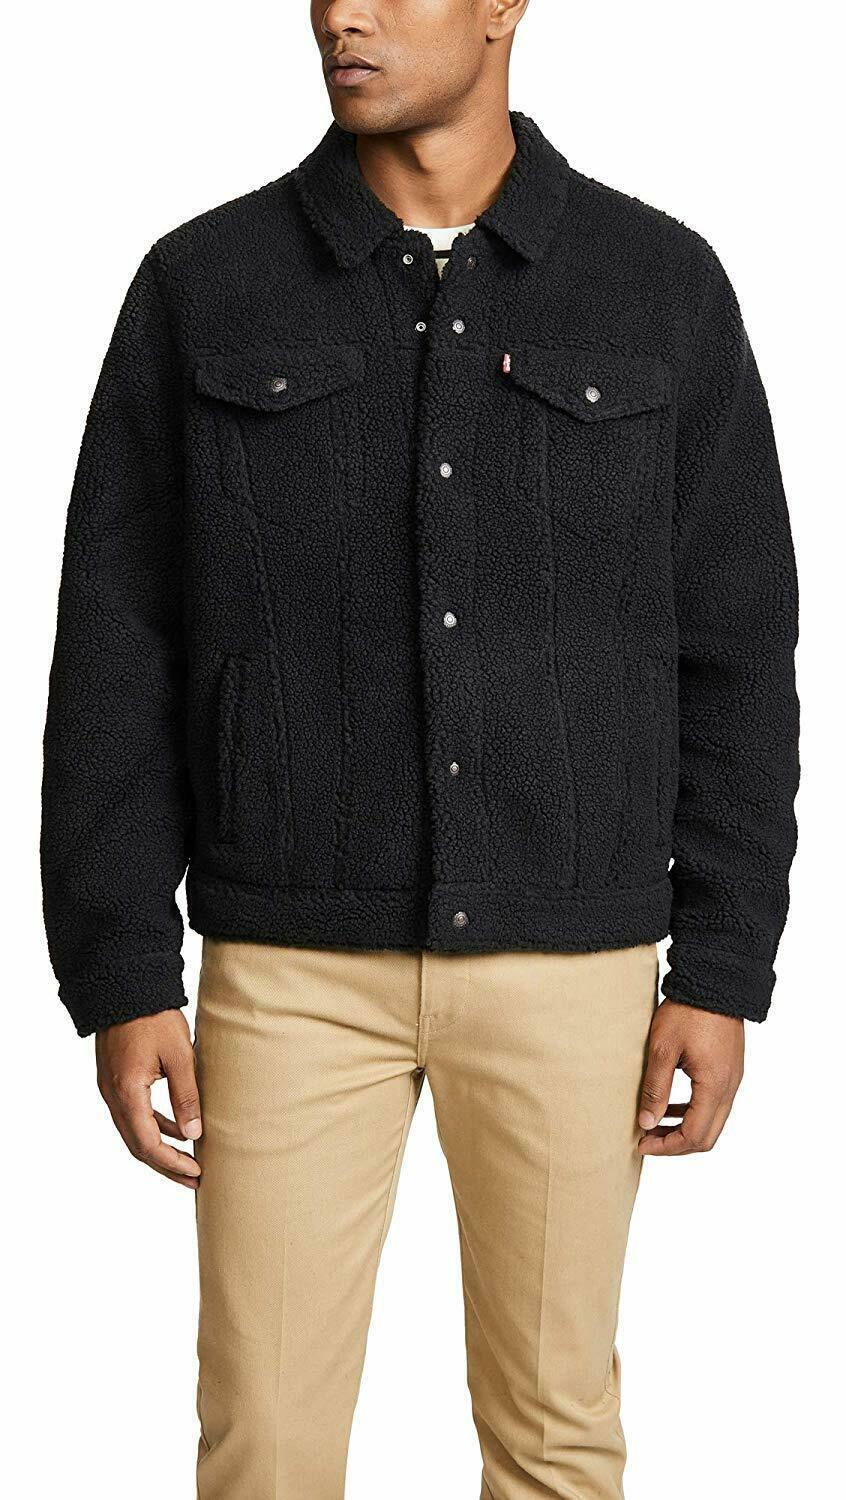 Levi's Strauss Men's Premium Snap Button Sherpa Face Trucker Jacket 577020002